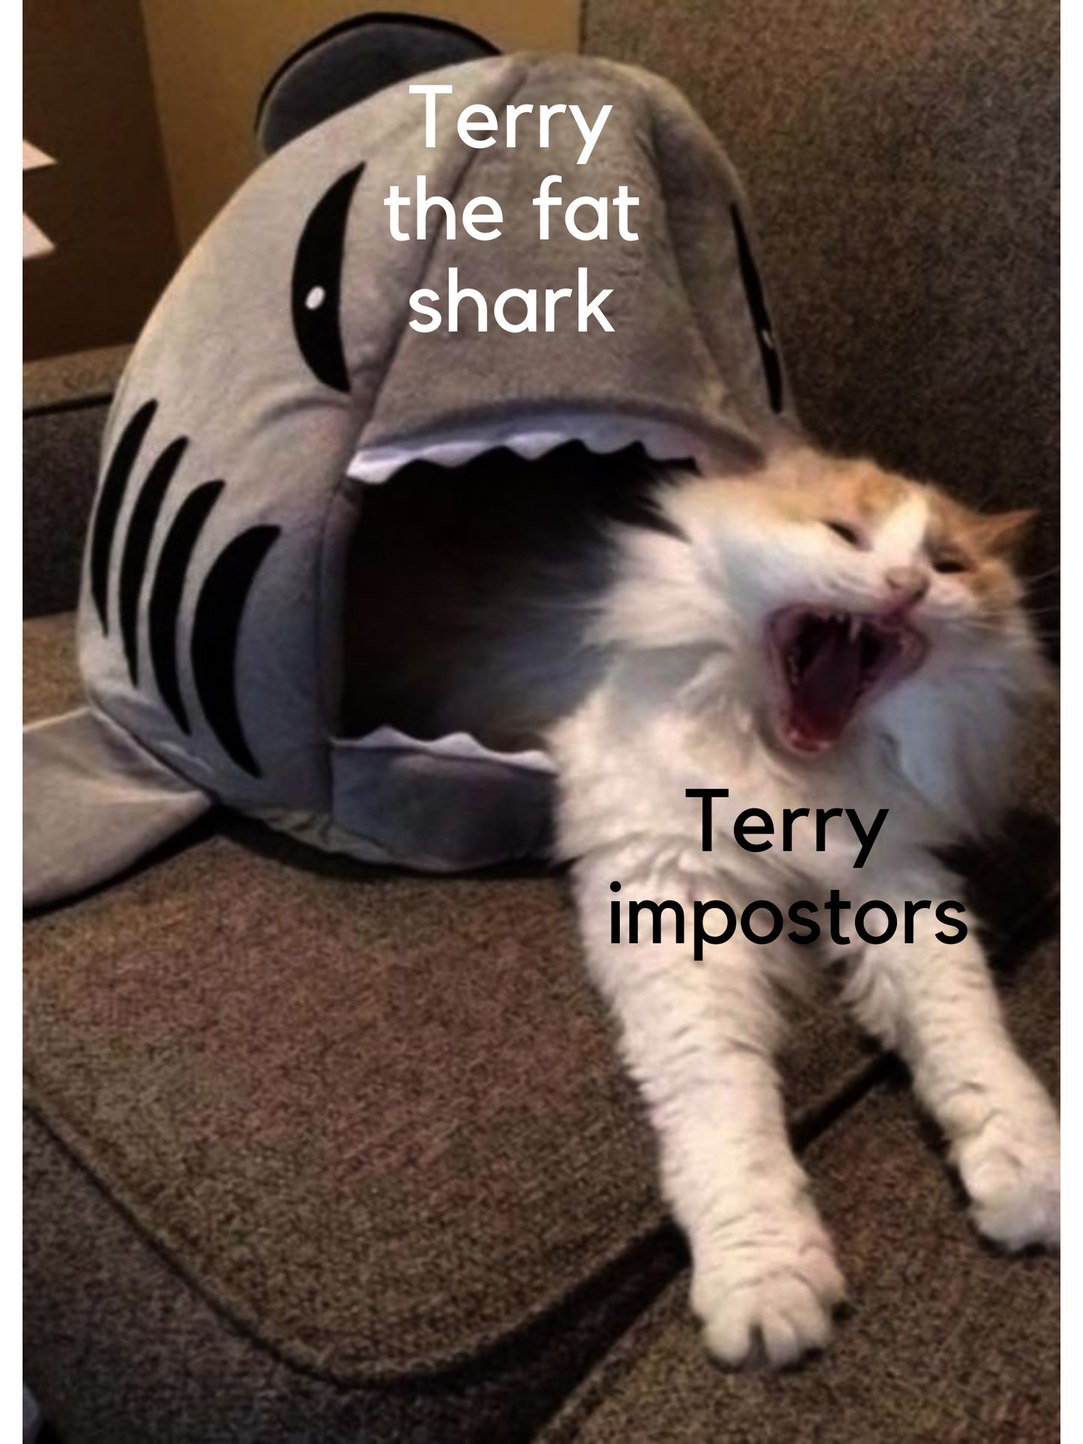 Be weary, there are fake Terry sharks, and they only want death - meme